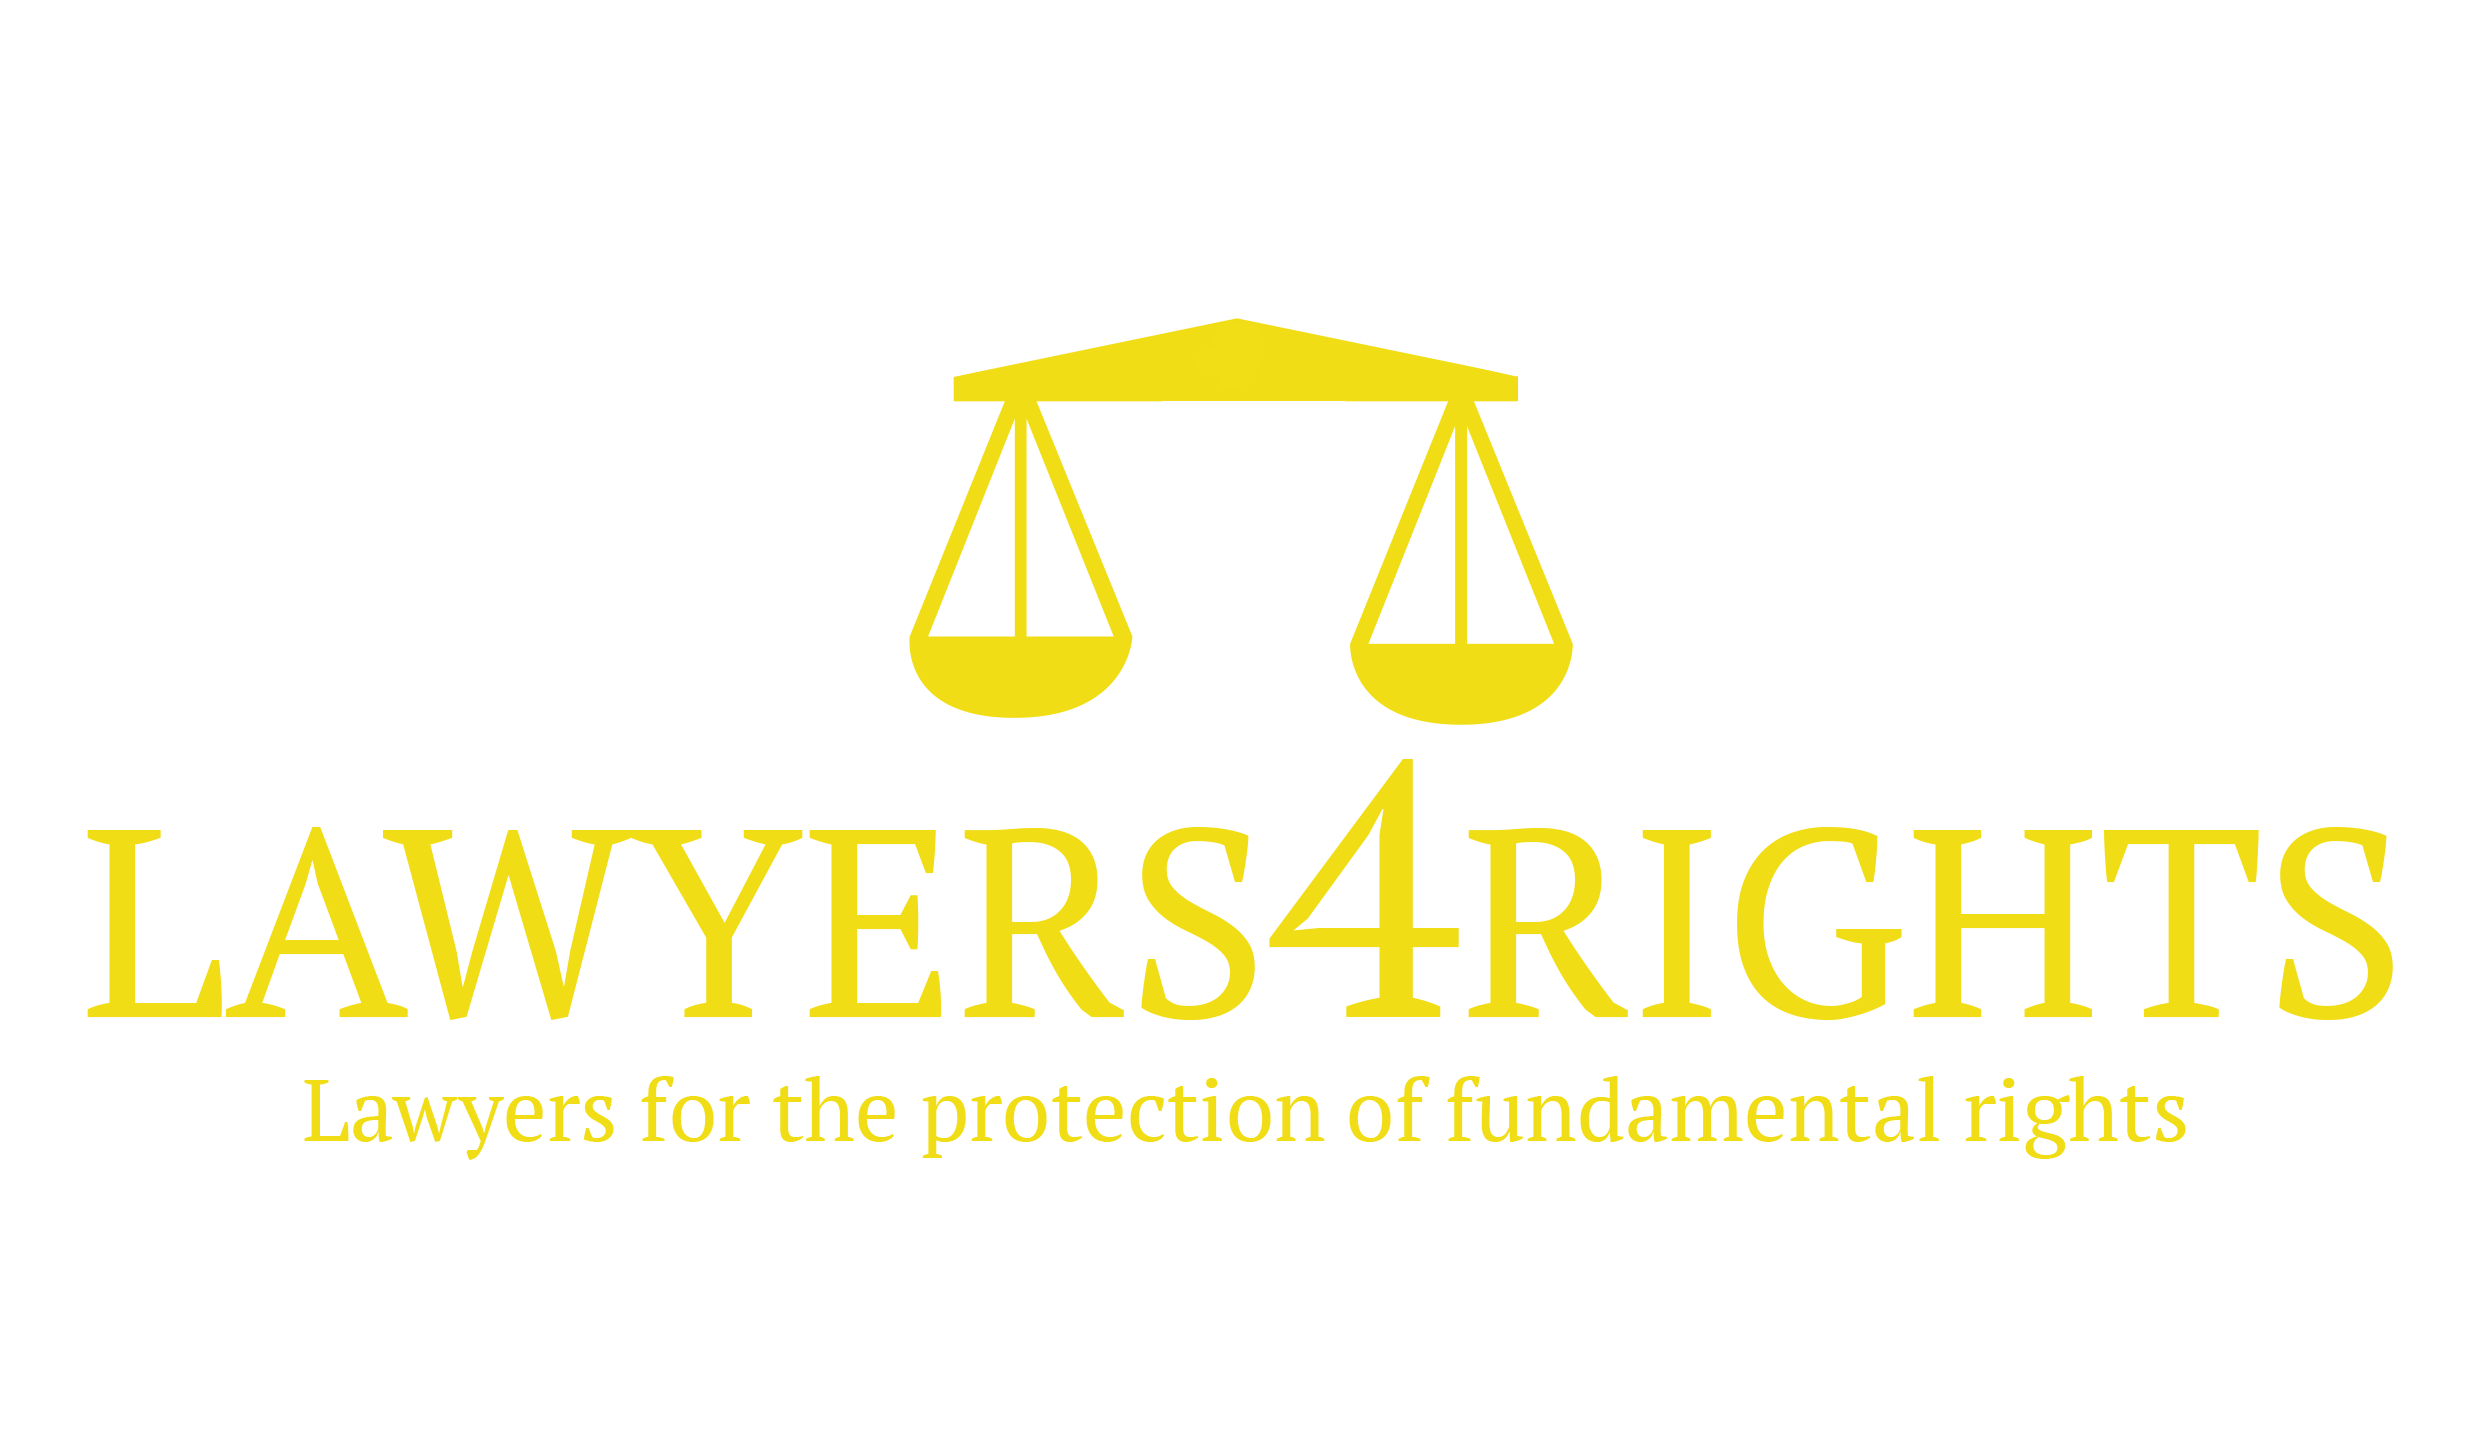 Lawyers For Rights